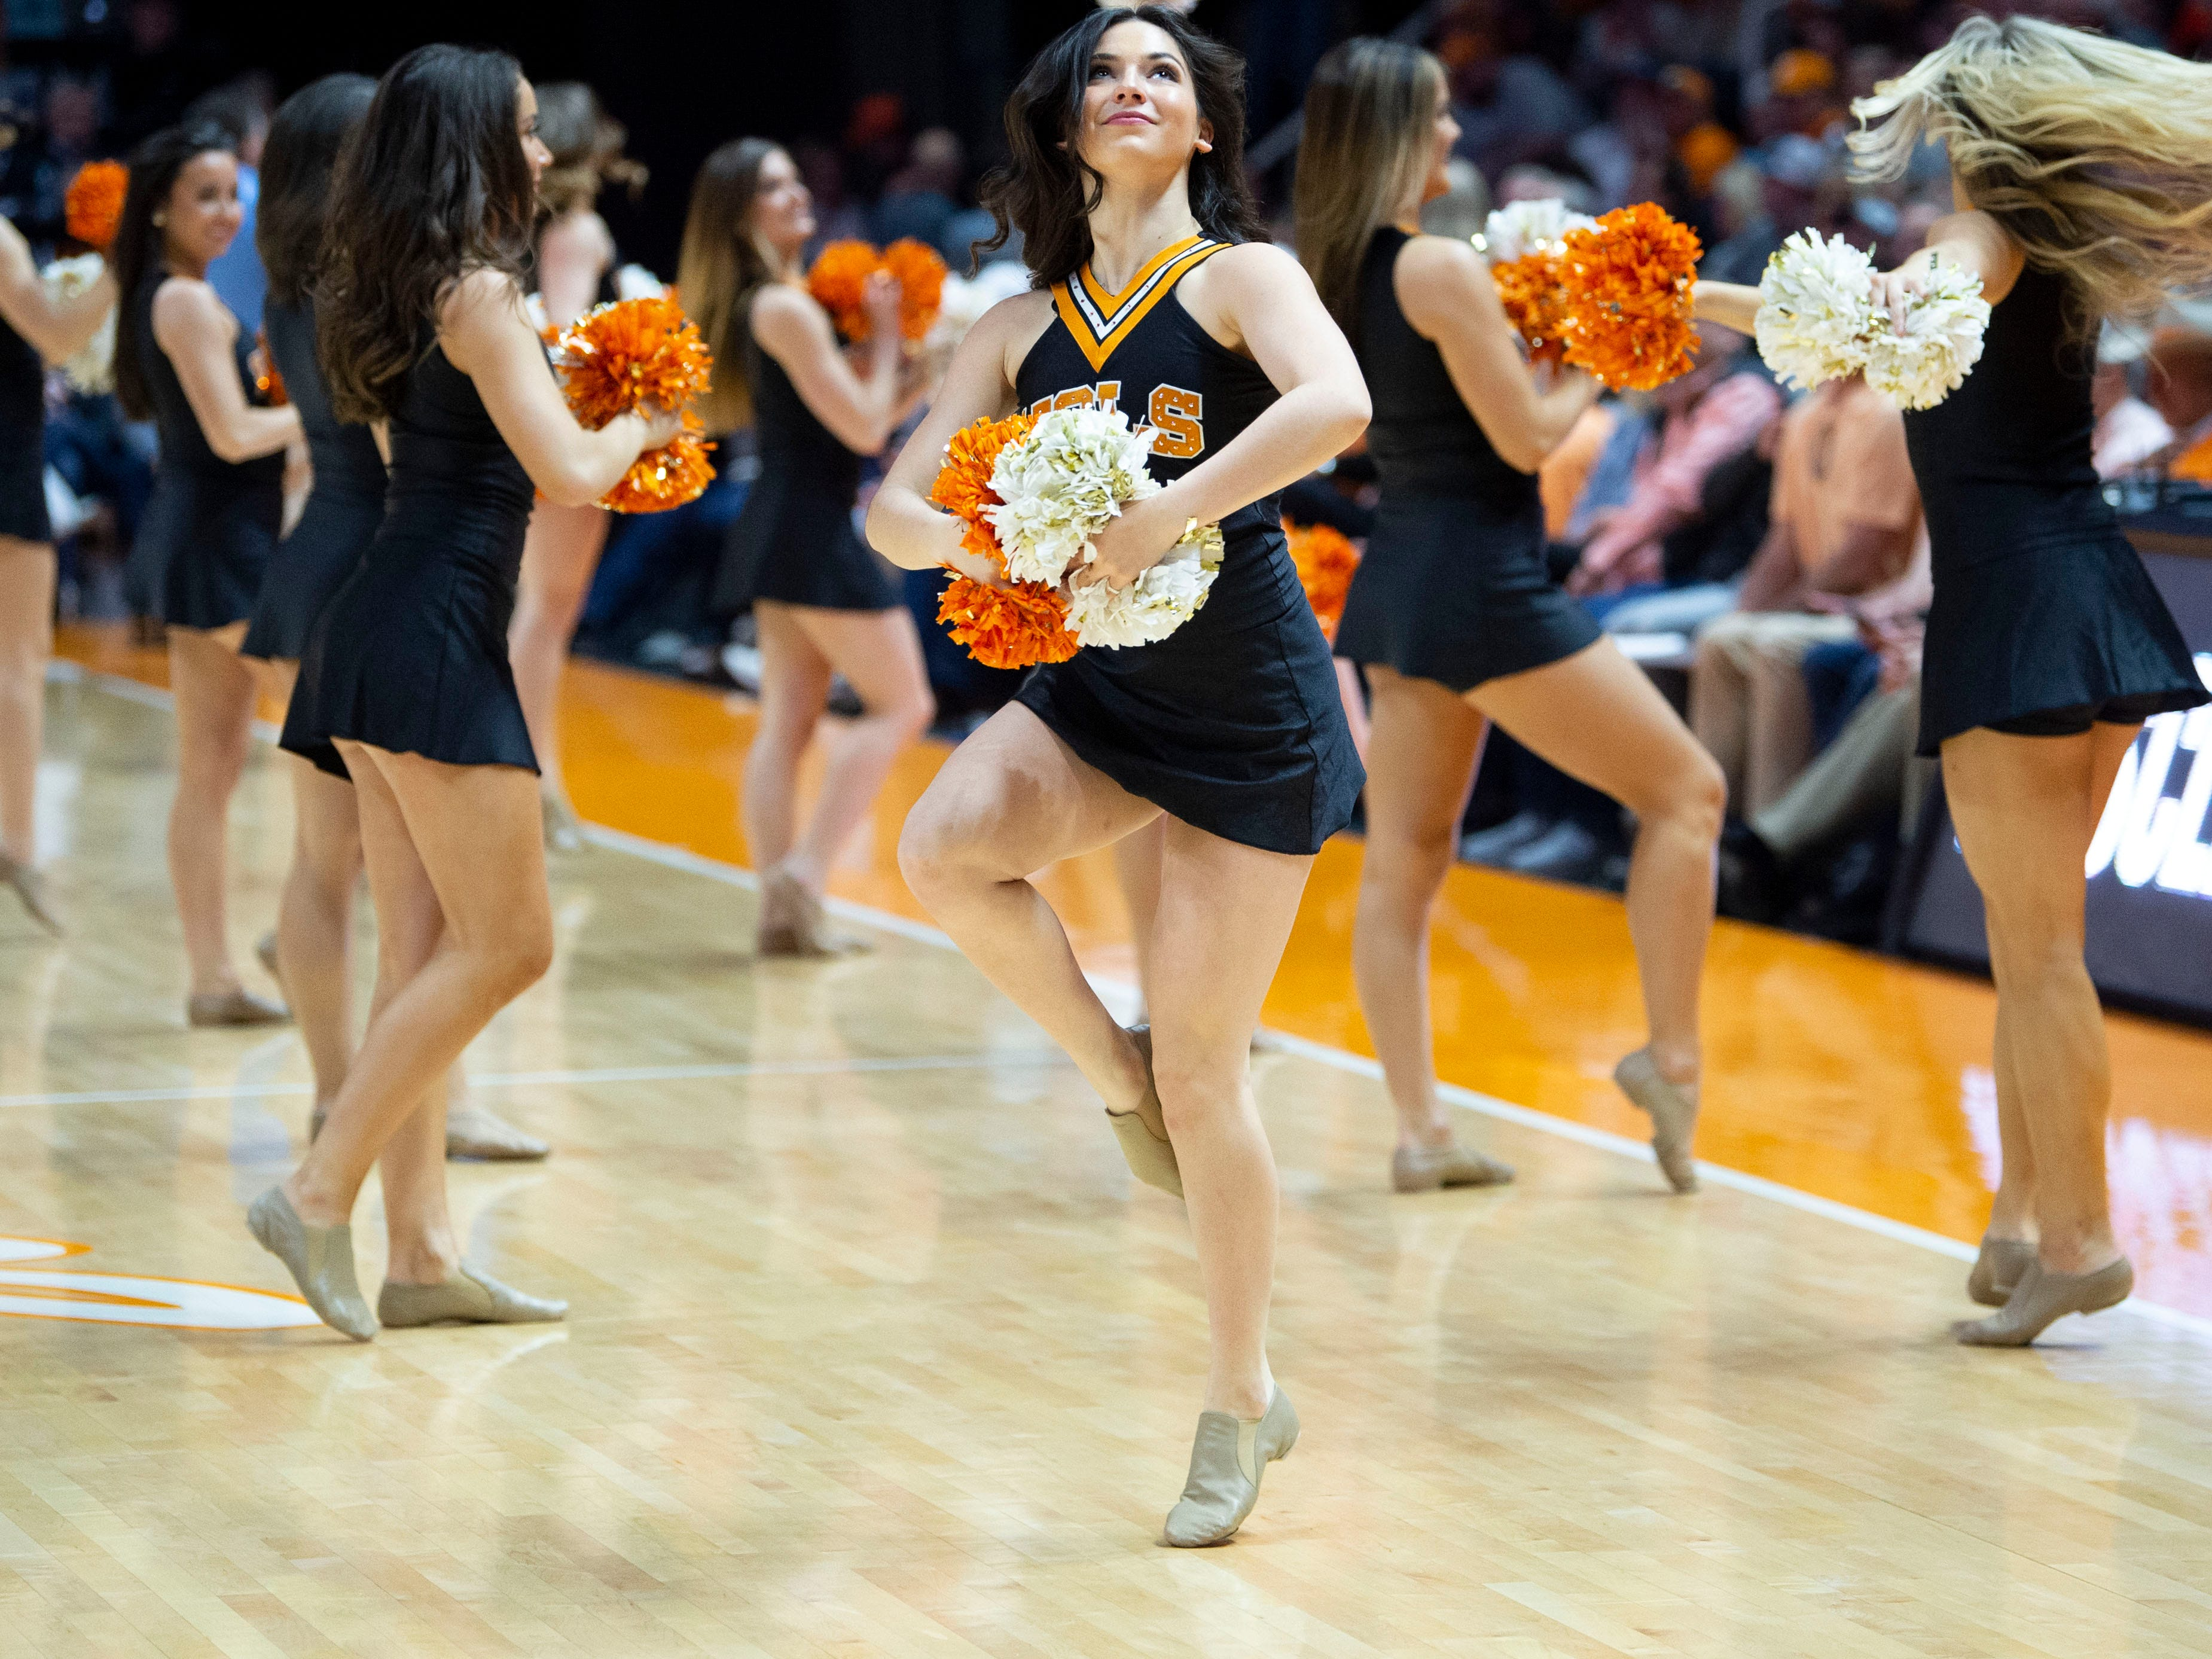 The Tennessee Dance Team entertains the crowd during the game against South Carolina on Wednesday, February 13, 2019.